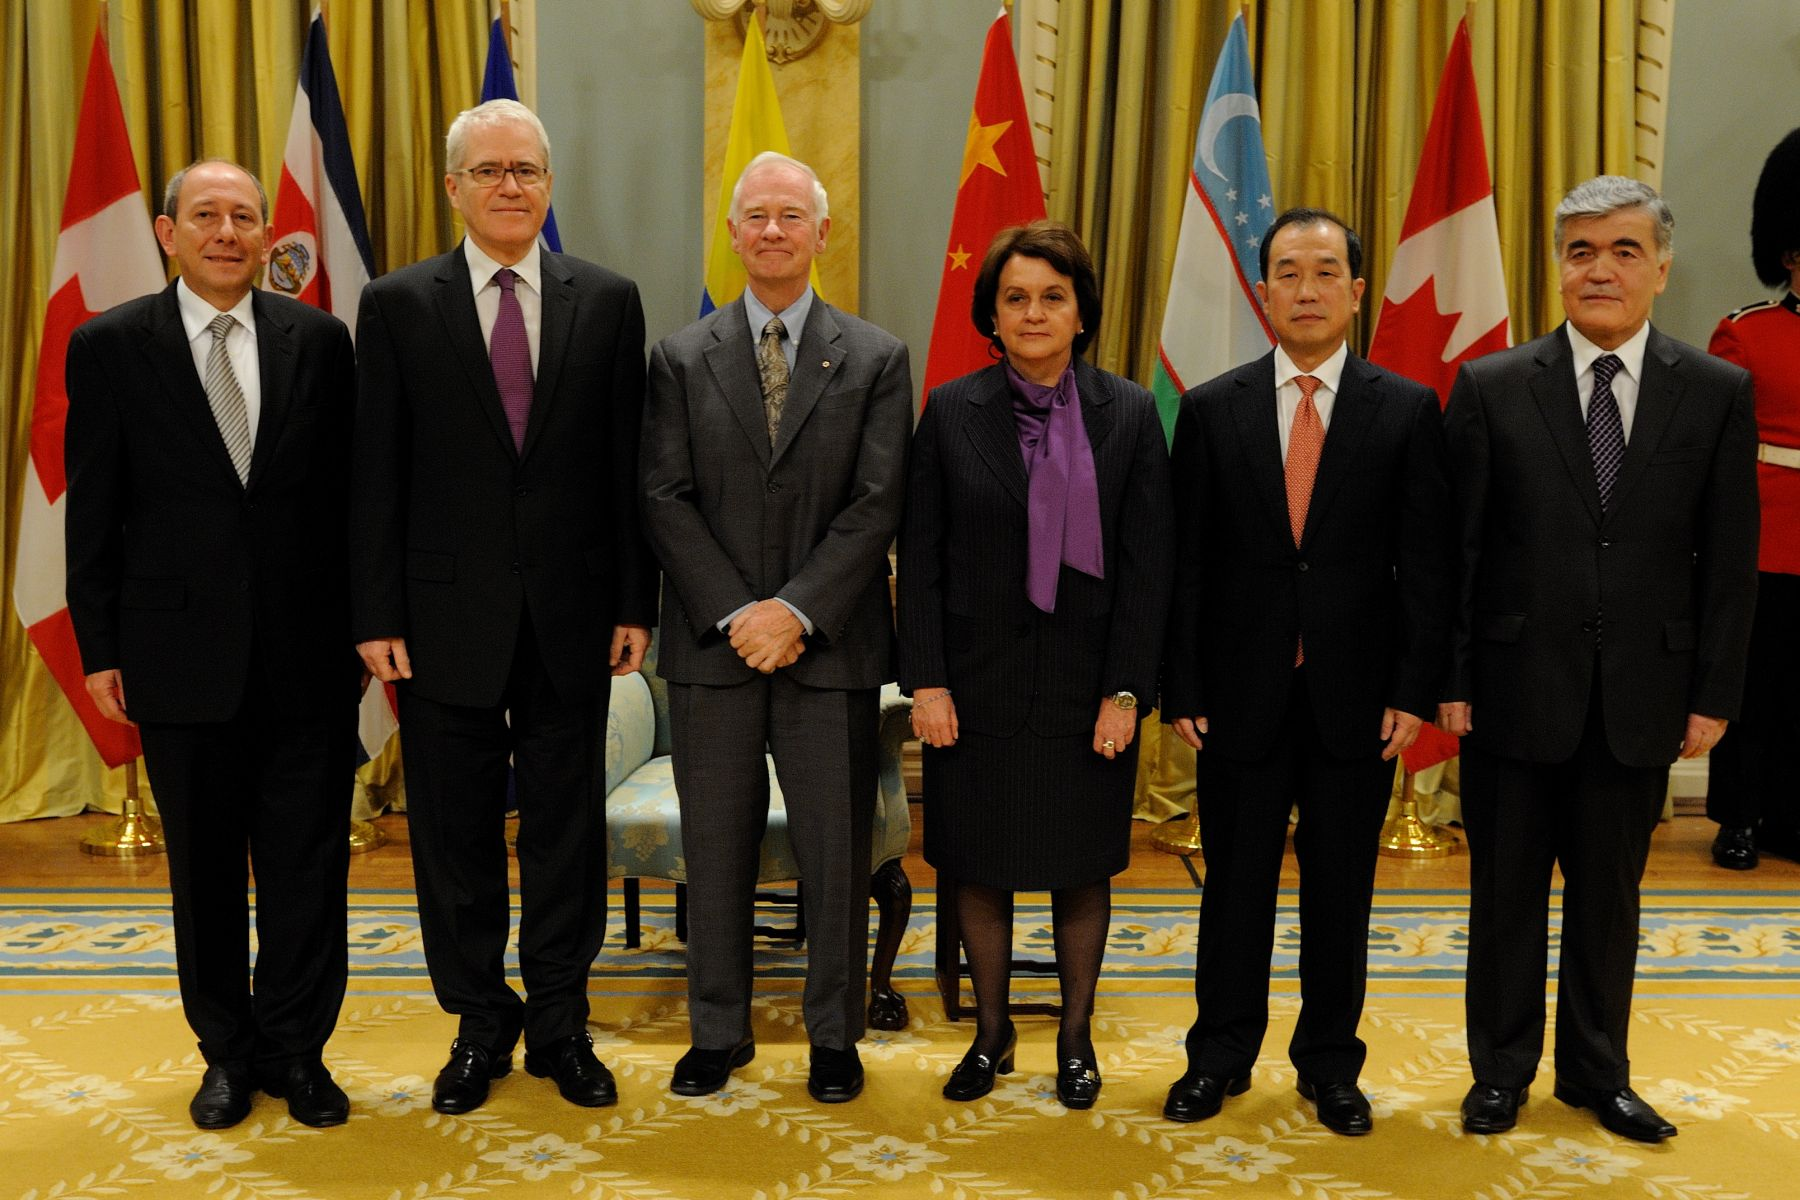 His Excellency the Right Honourable David Johnston, Governor General of Canada, received the credentials of five new ambassadors on Wednesday, November 23, 2010.